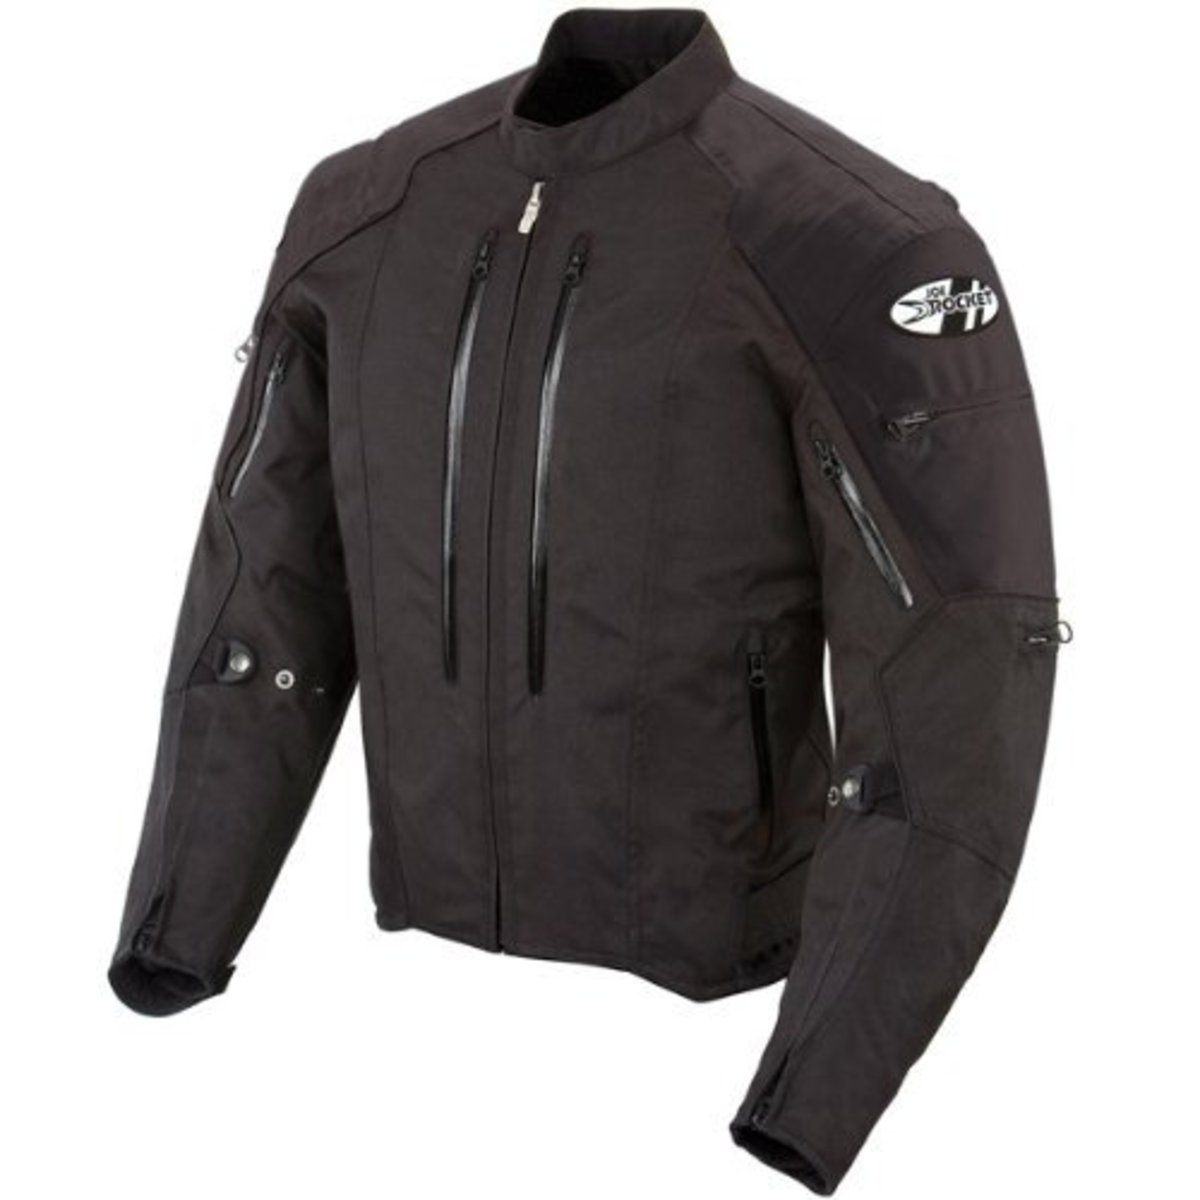 Best Value Inexpensive Motorcycle Jackets for Men Under 200 ...